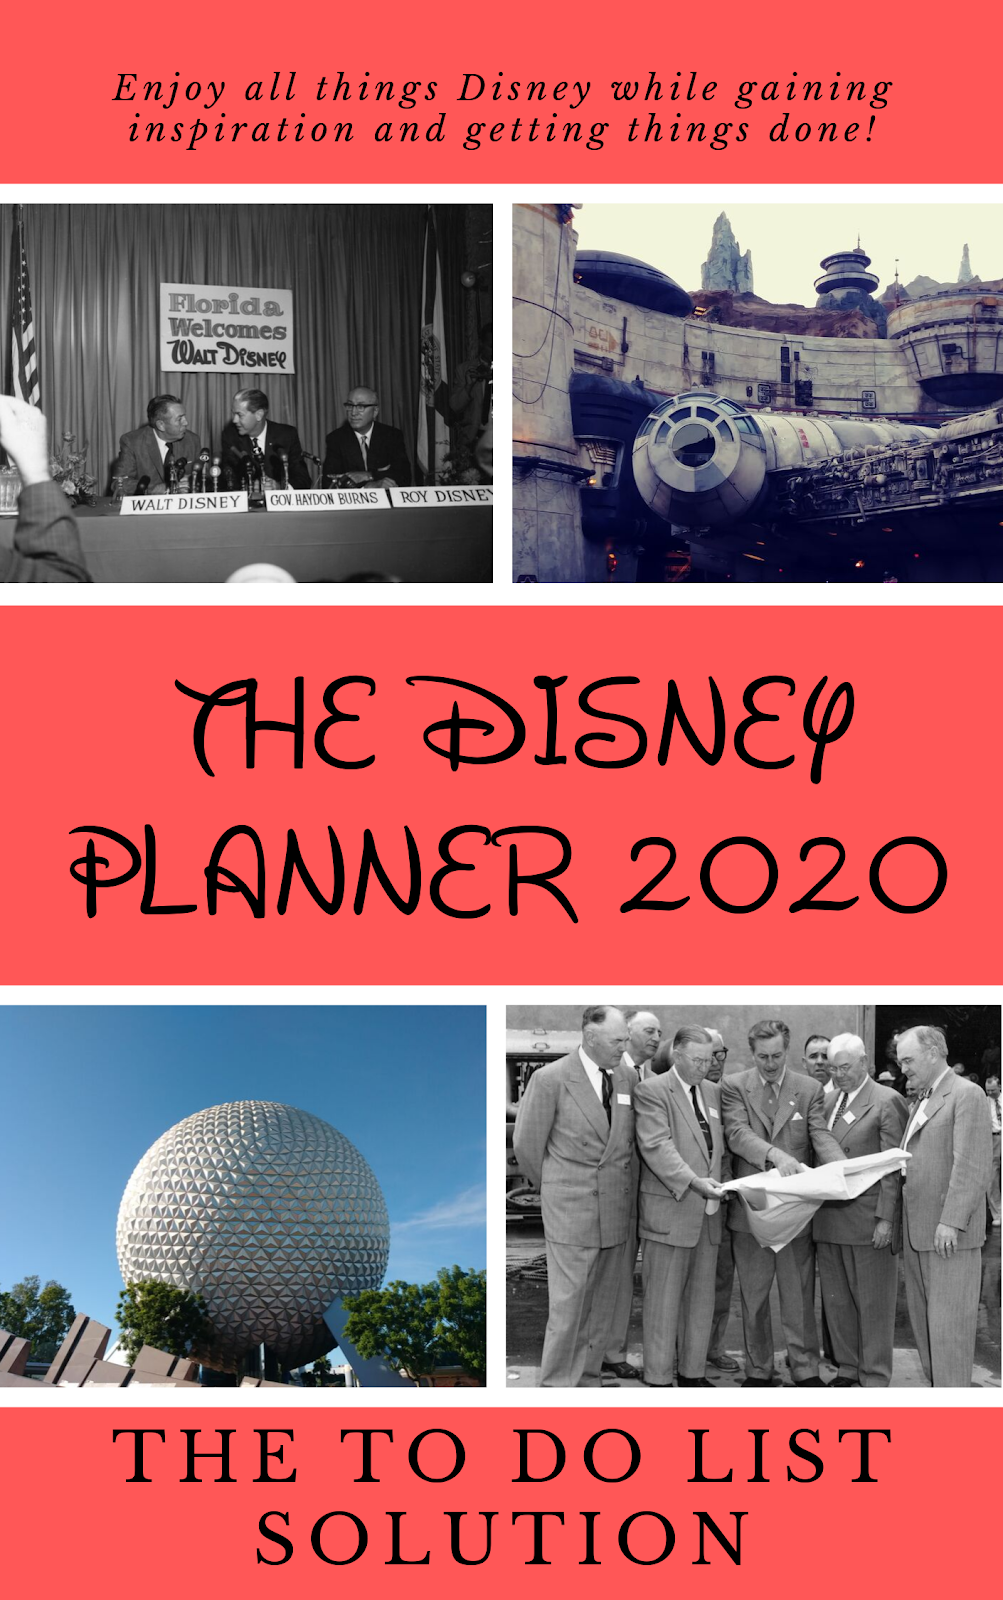 Get The Disney Planner 2020 at Amazon.com